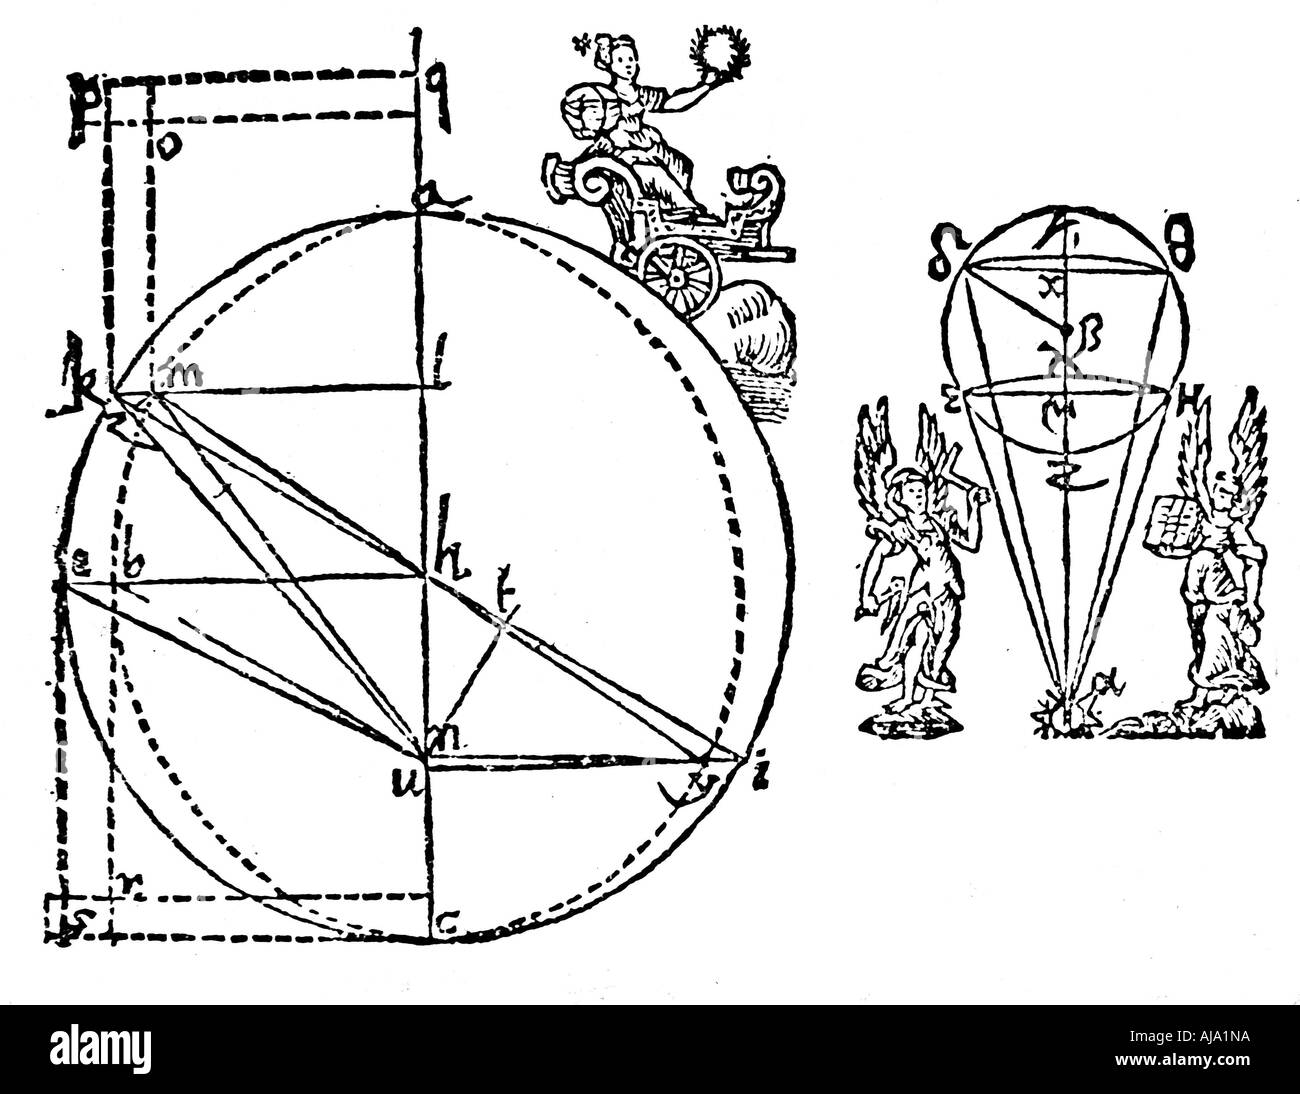 kepler s illustration to explain his discovery of the elliptical